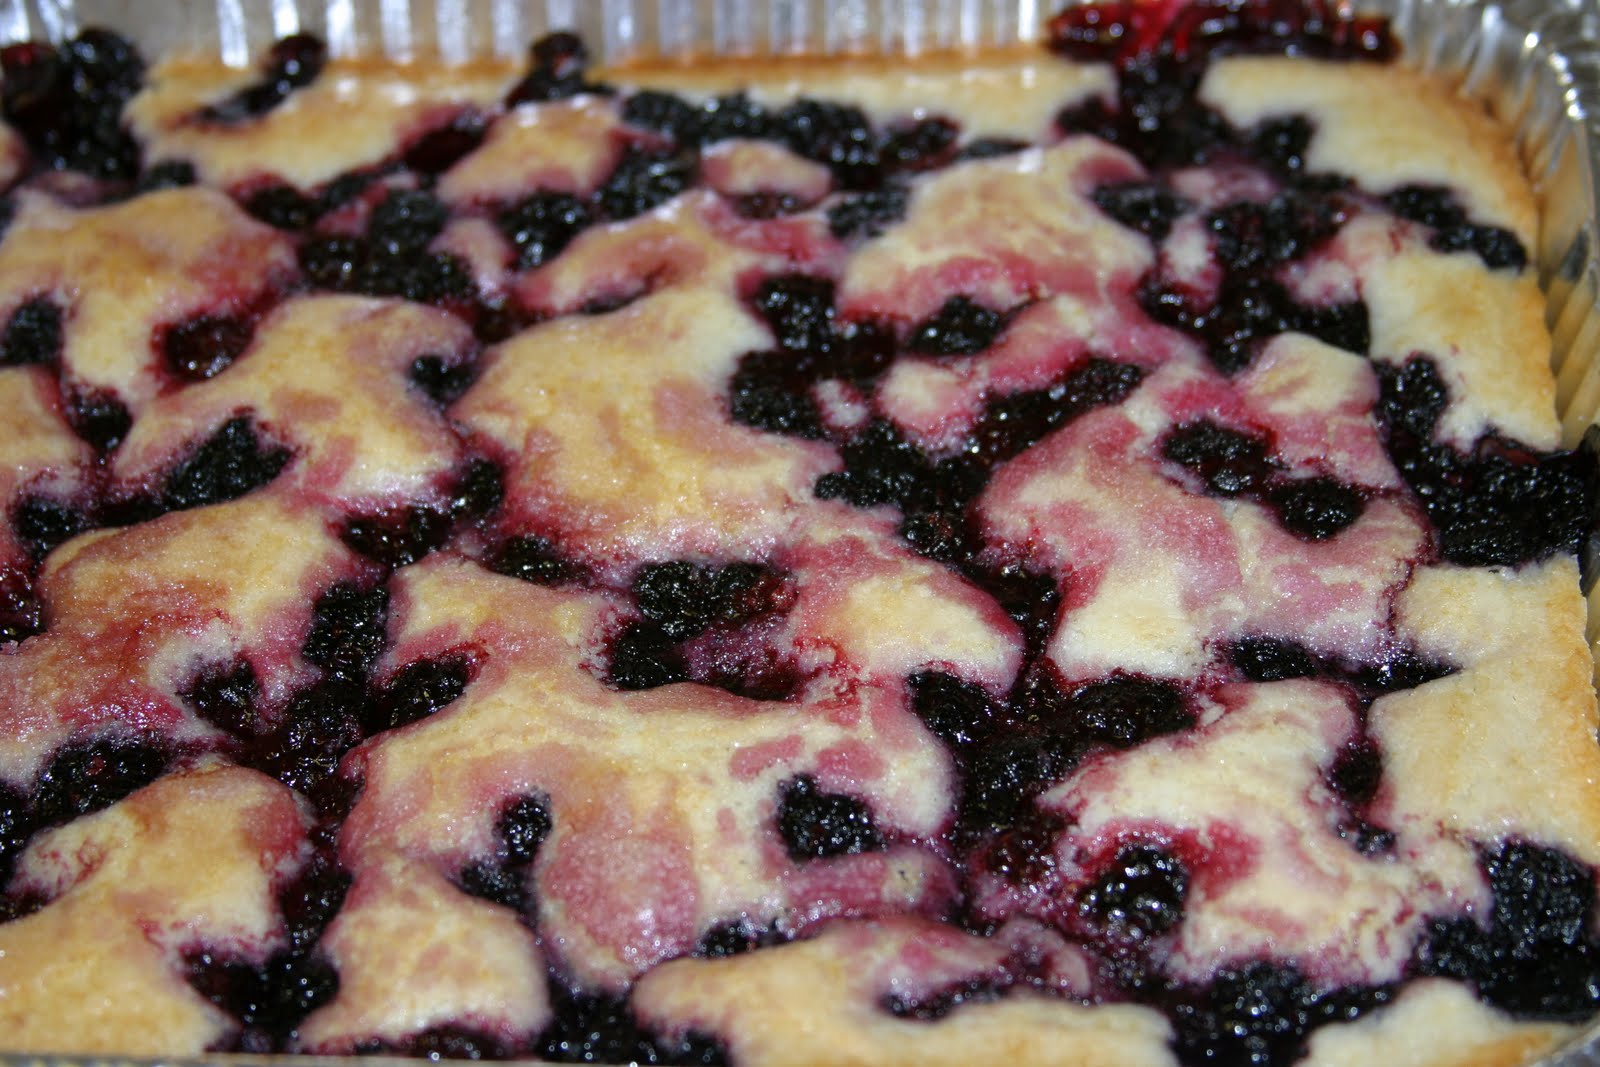 ... cobbler recipe which is now my favorite cobbler recipe its almost